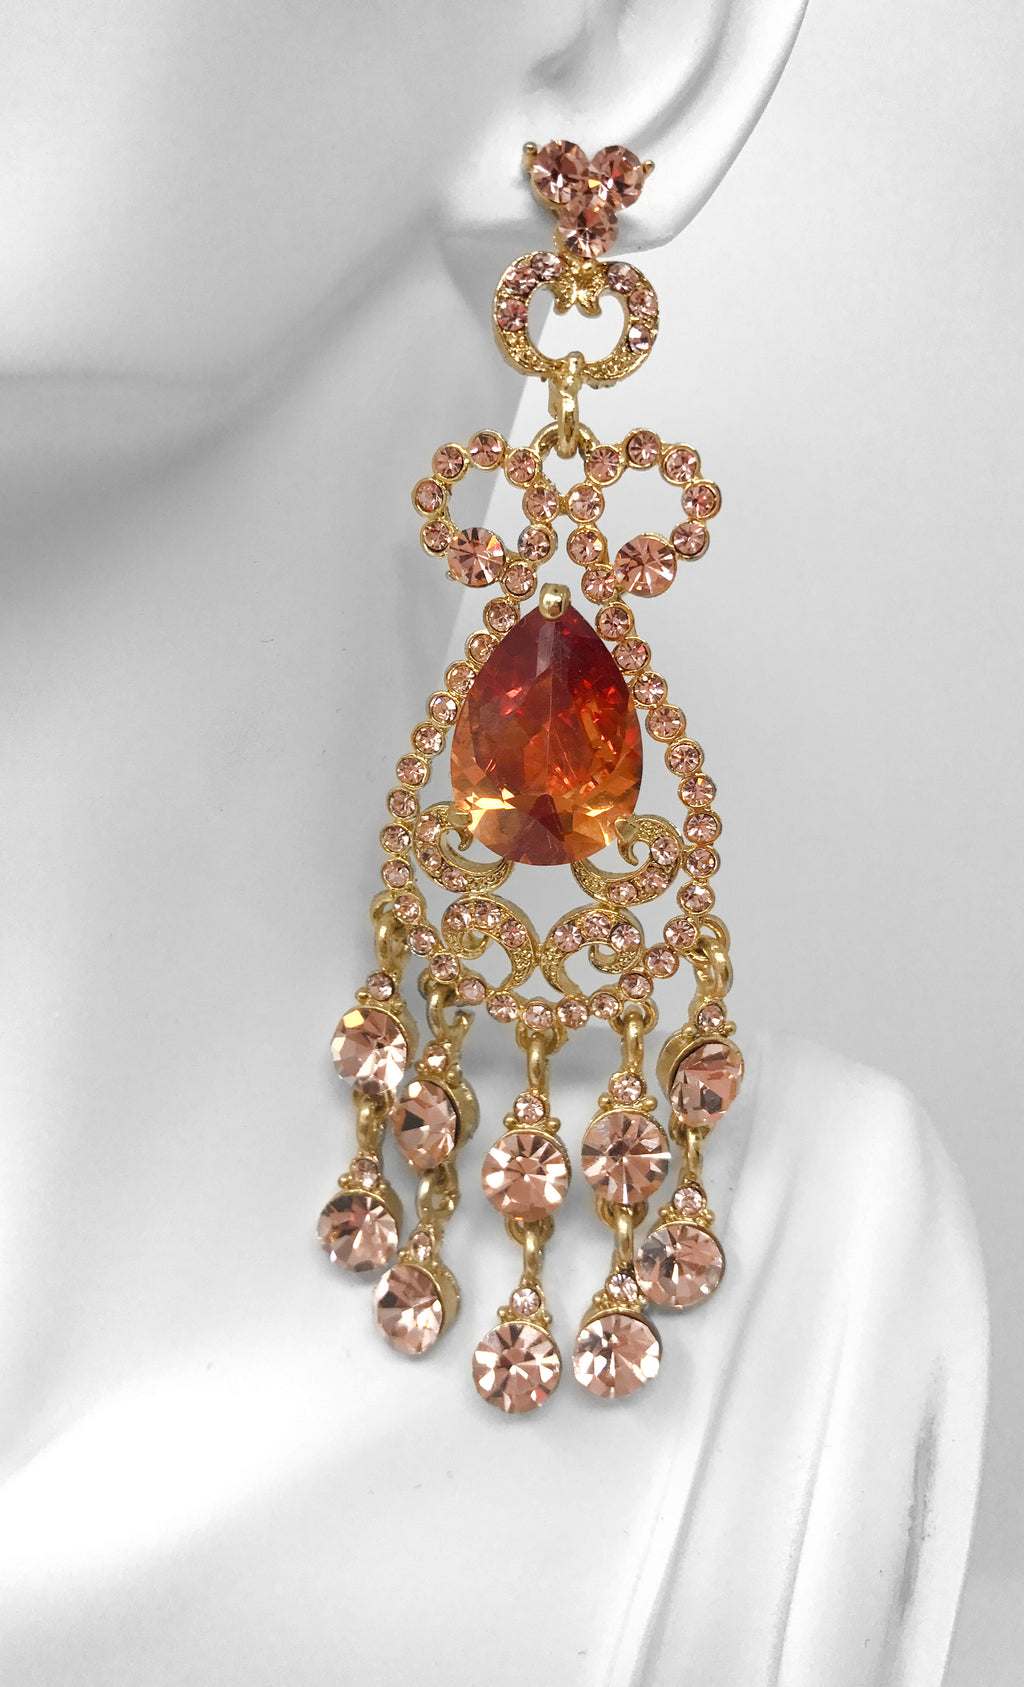 Indie XO Taj Mahal Gold Plated Citrine Orange Swarovski Crystal Rhinestone Fringe Chandelier Earrings